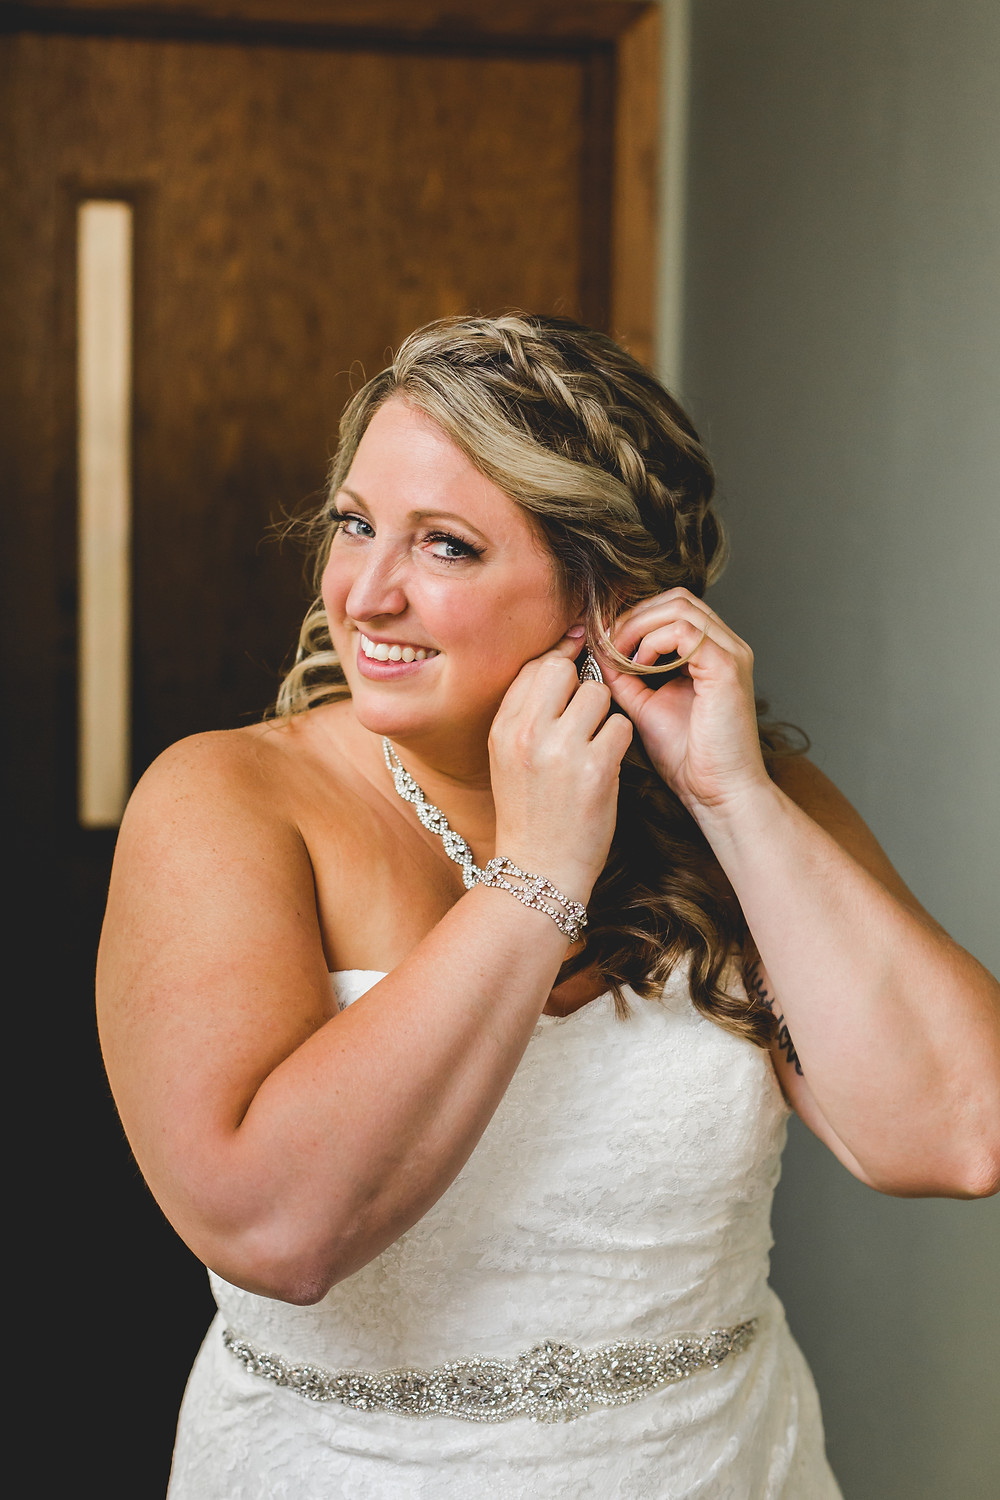 Bride, wedding photography, wedding photographer, Chicagoland wedding photographer